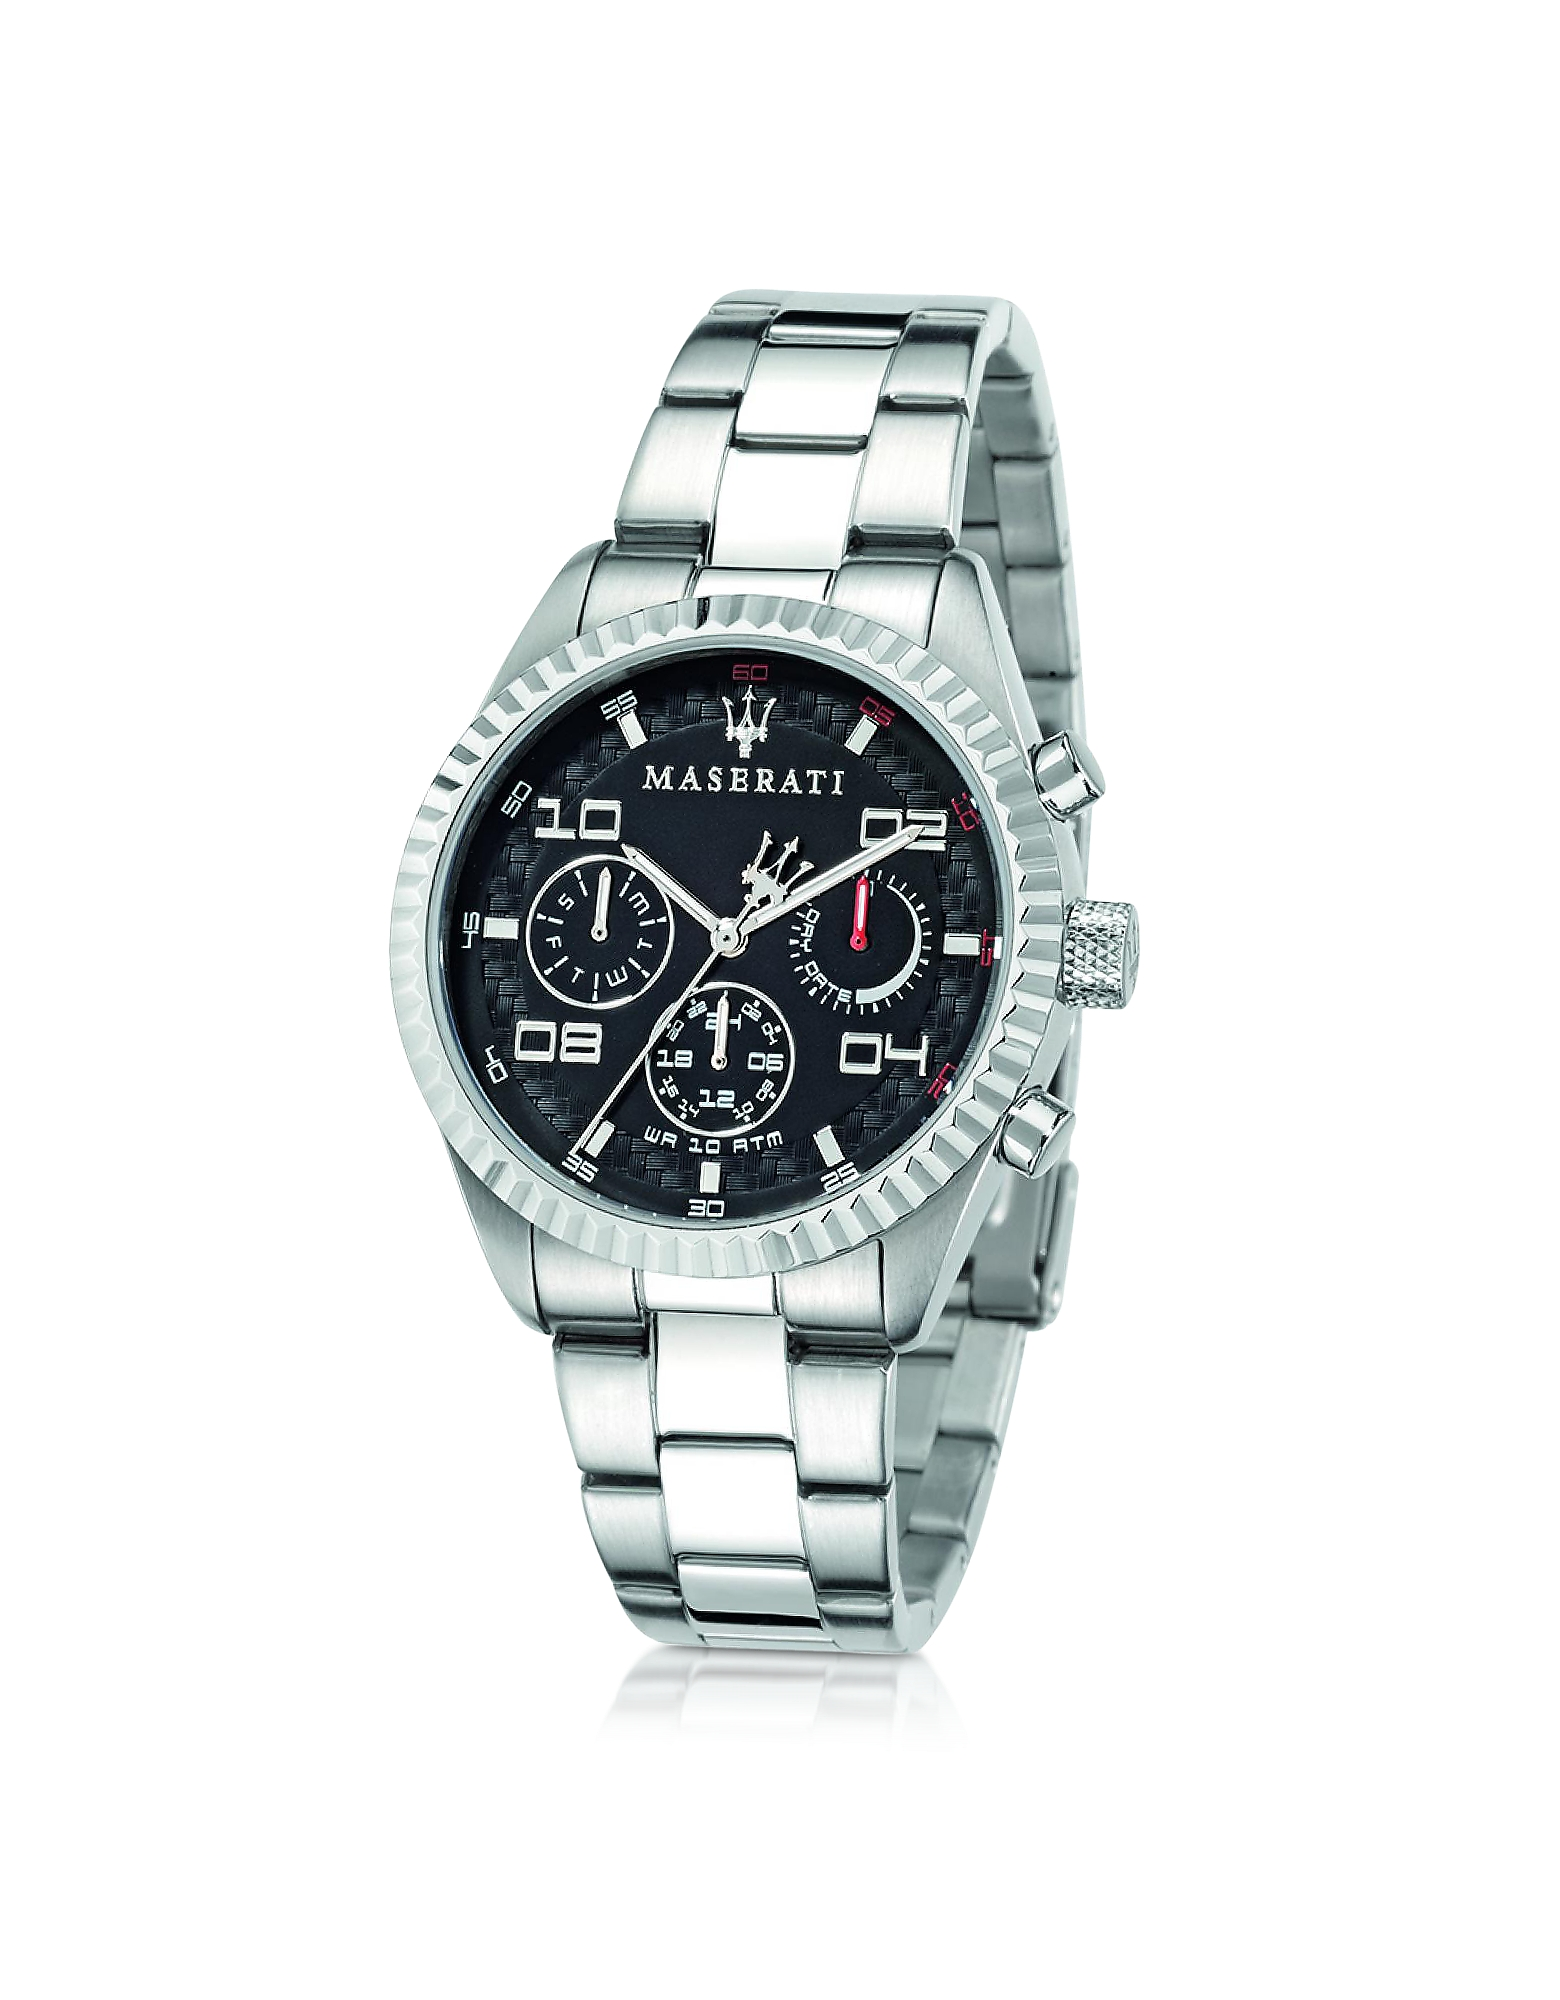 Maserati Men's Watches, Competizione Multi Black Dial Stainless Steel Men's Watch